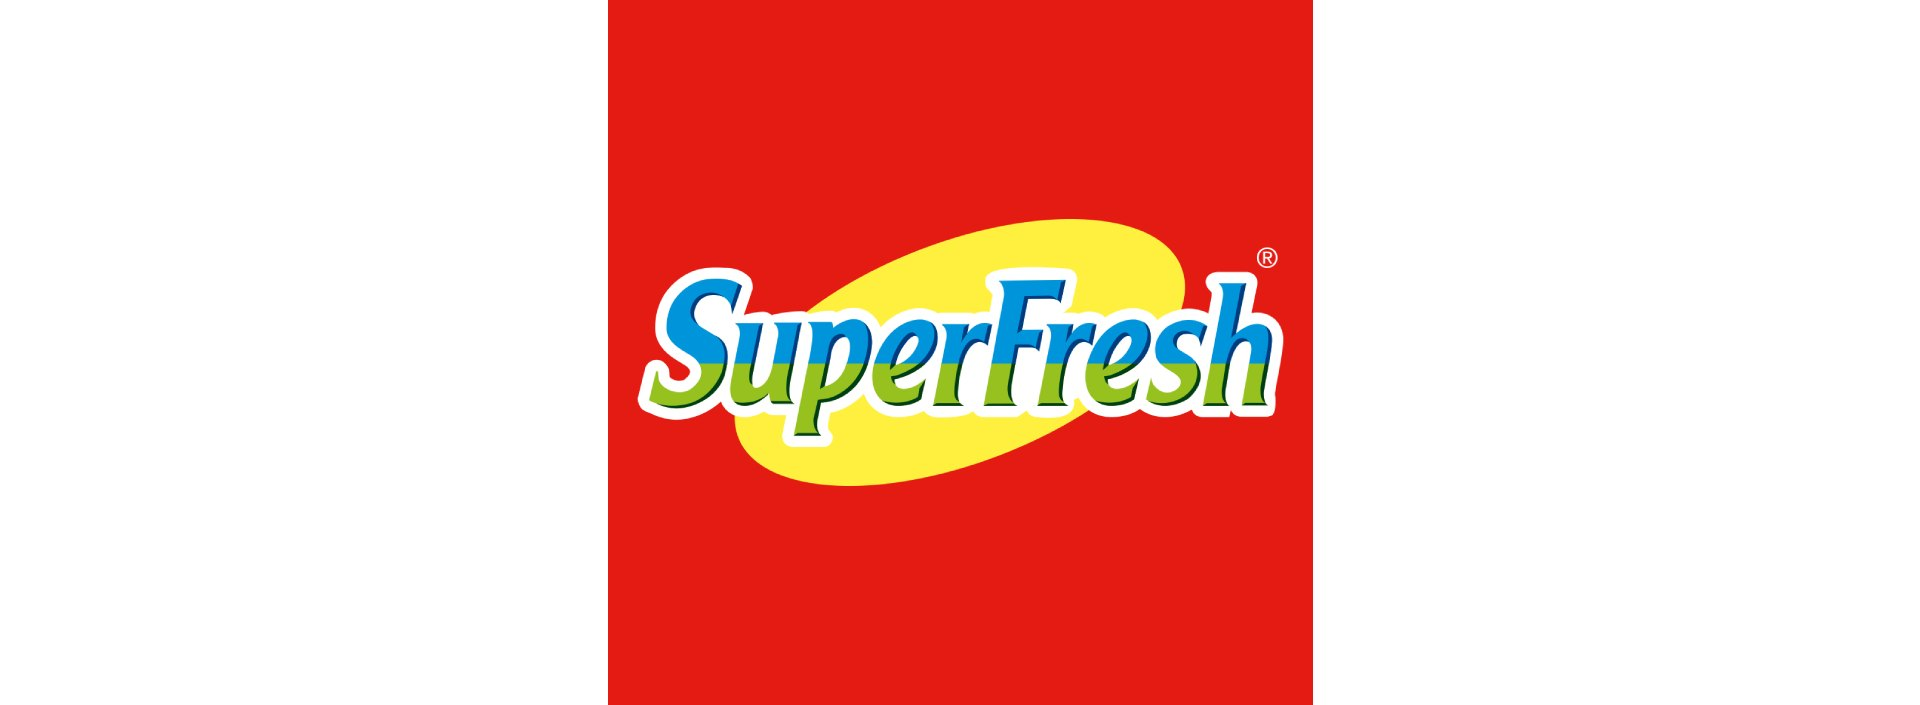 Food safety at SuperFresh is further proven through TSE COVID-19 Safe Production Certification